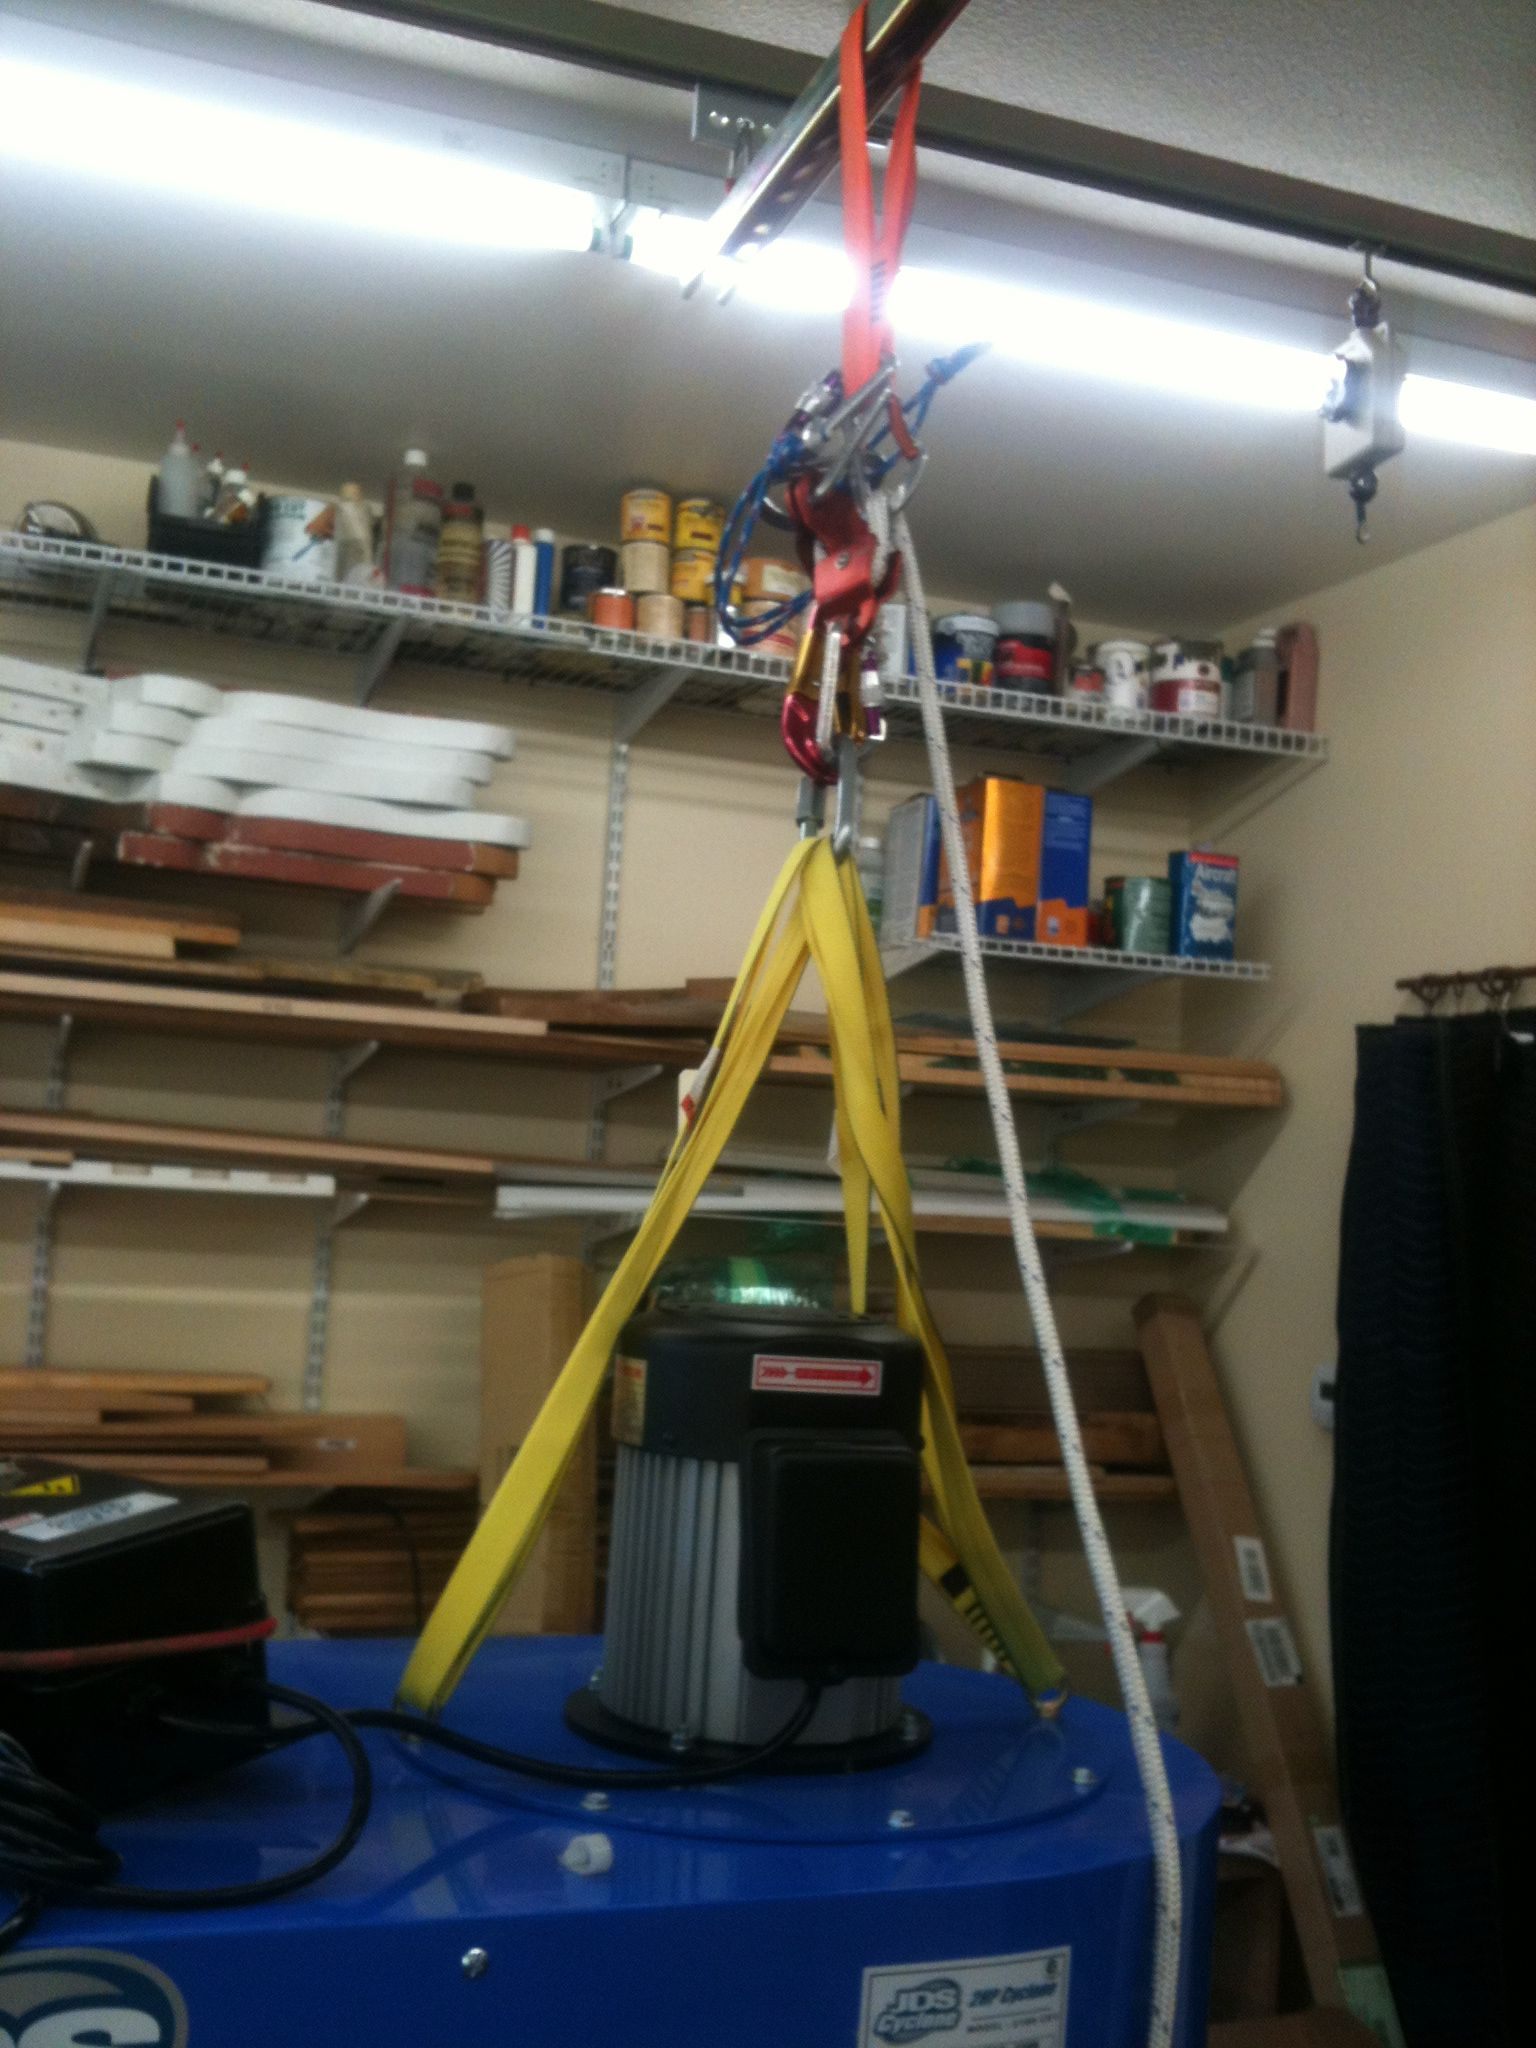 Unistrut Trolley System In My Shop. Being Used Here To Hoist Parts Of My  Dust Collector During Assembly.   Tools U0026 Shops   Pinterest   Dust  Collector, ...